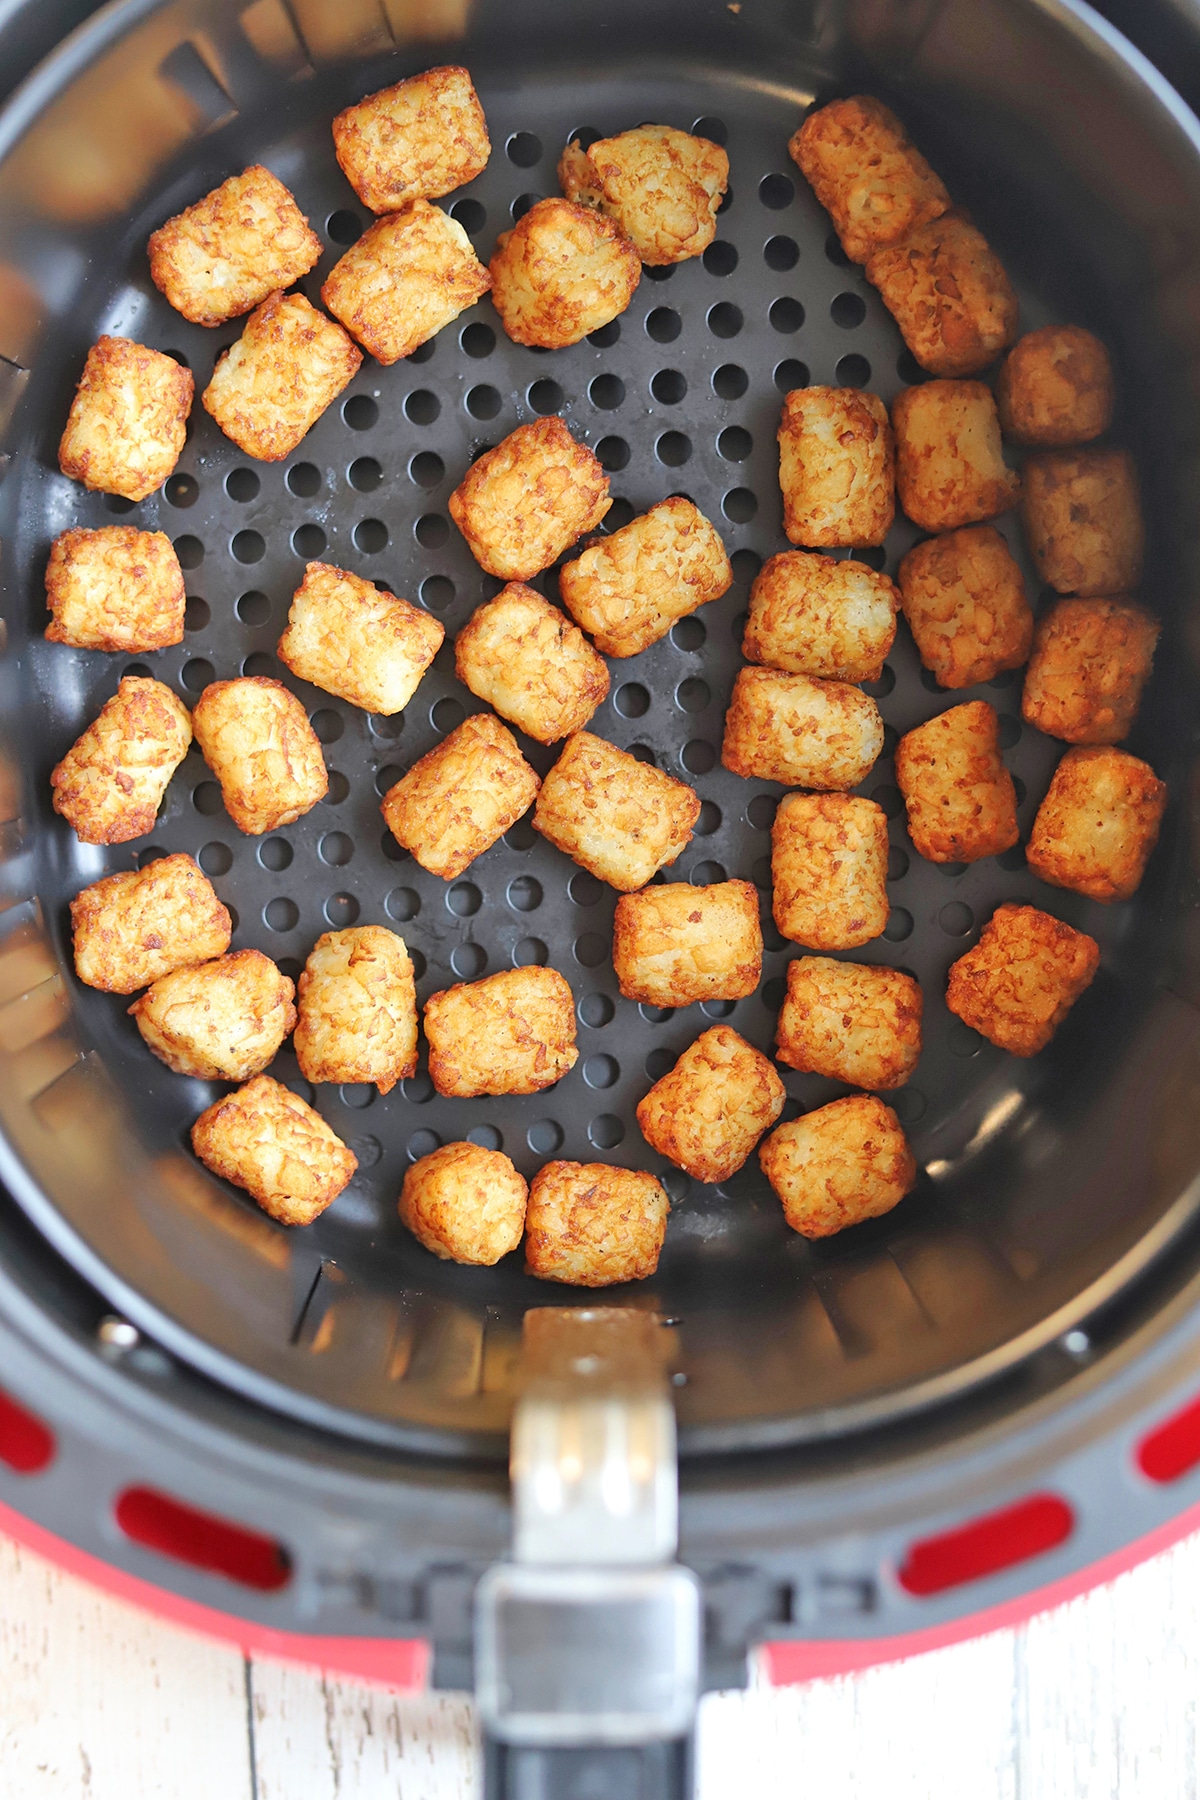 Overhead tater tots in air fryer basket.